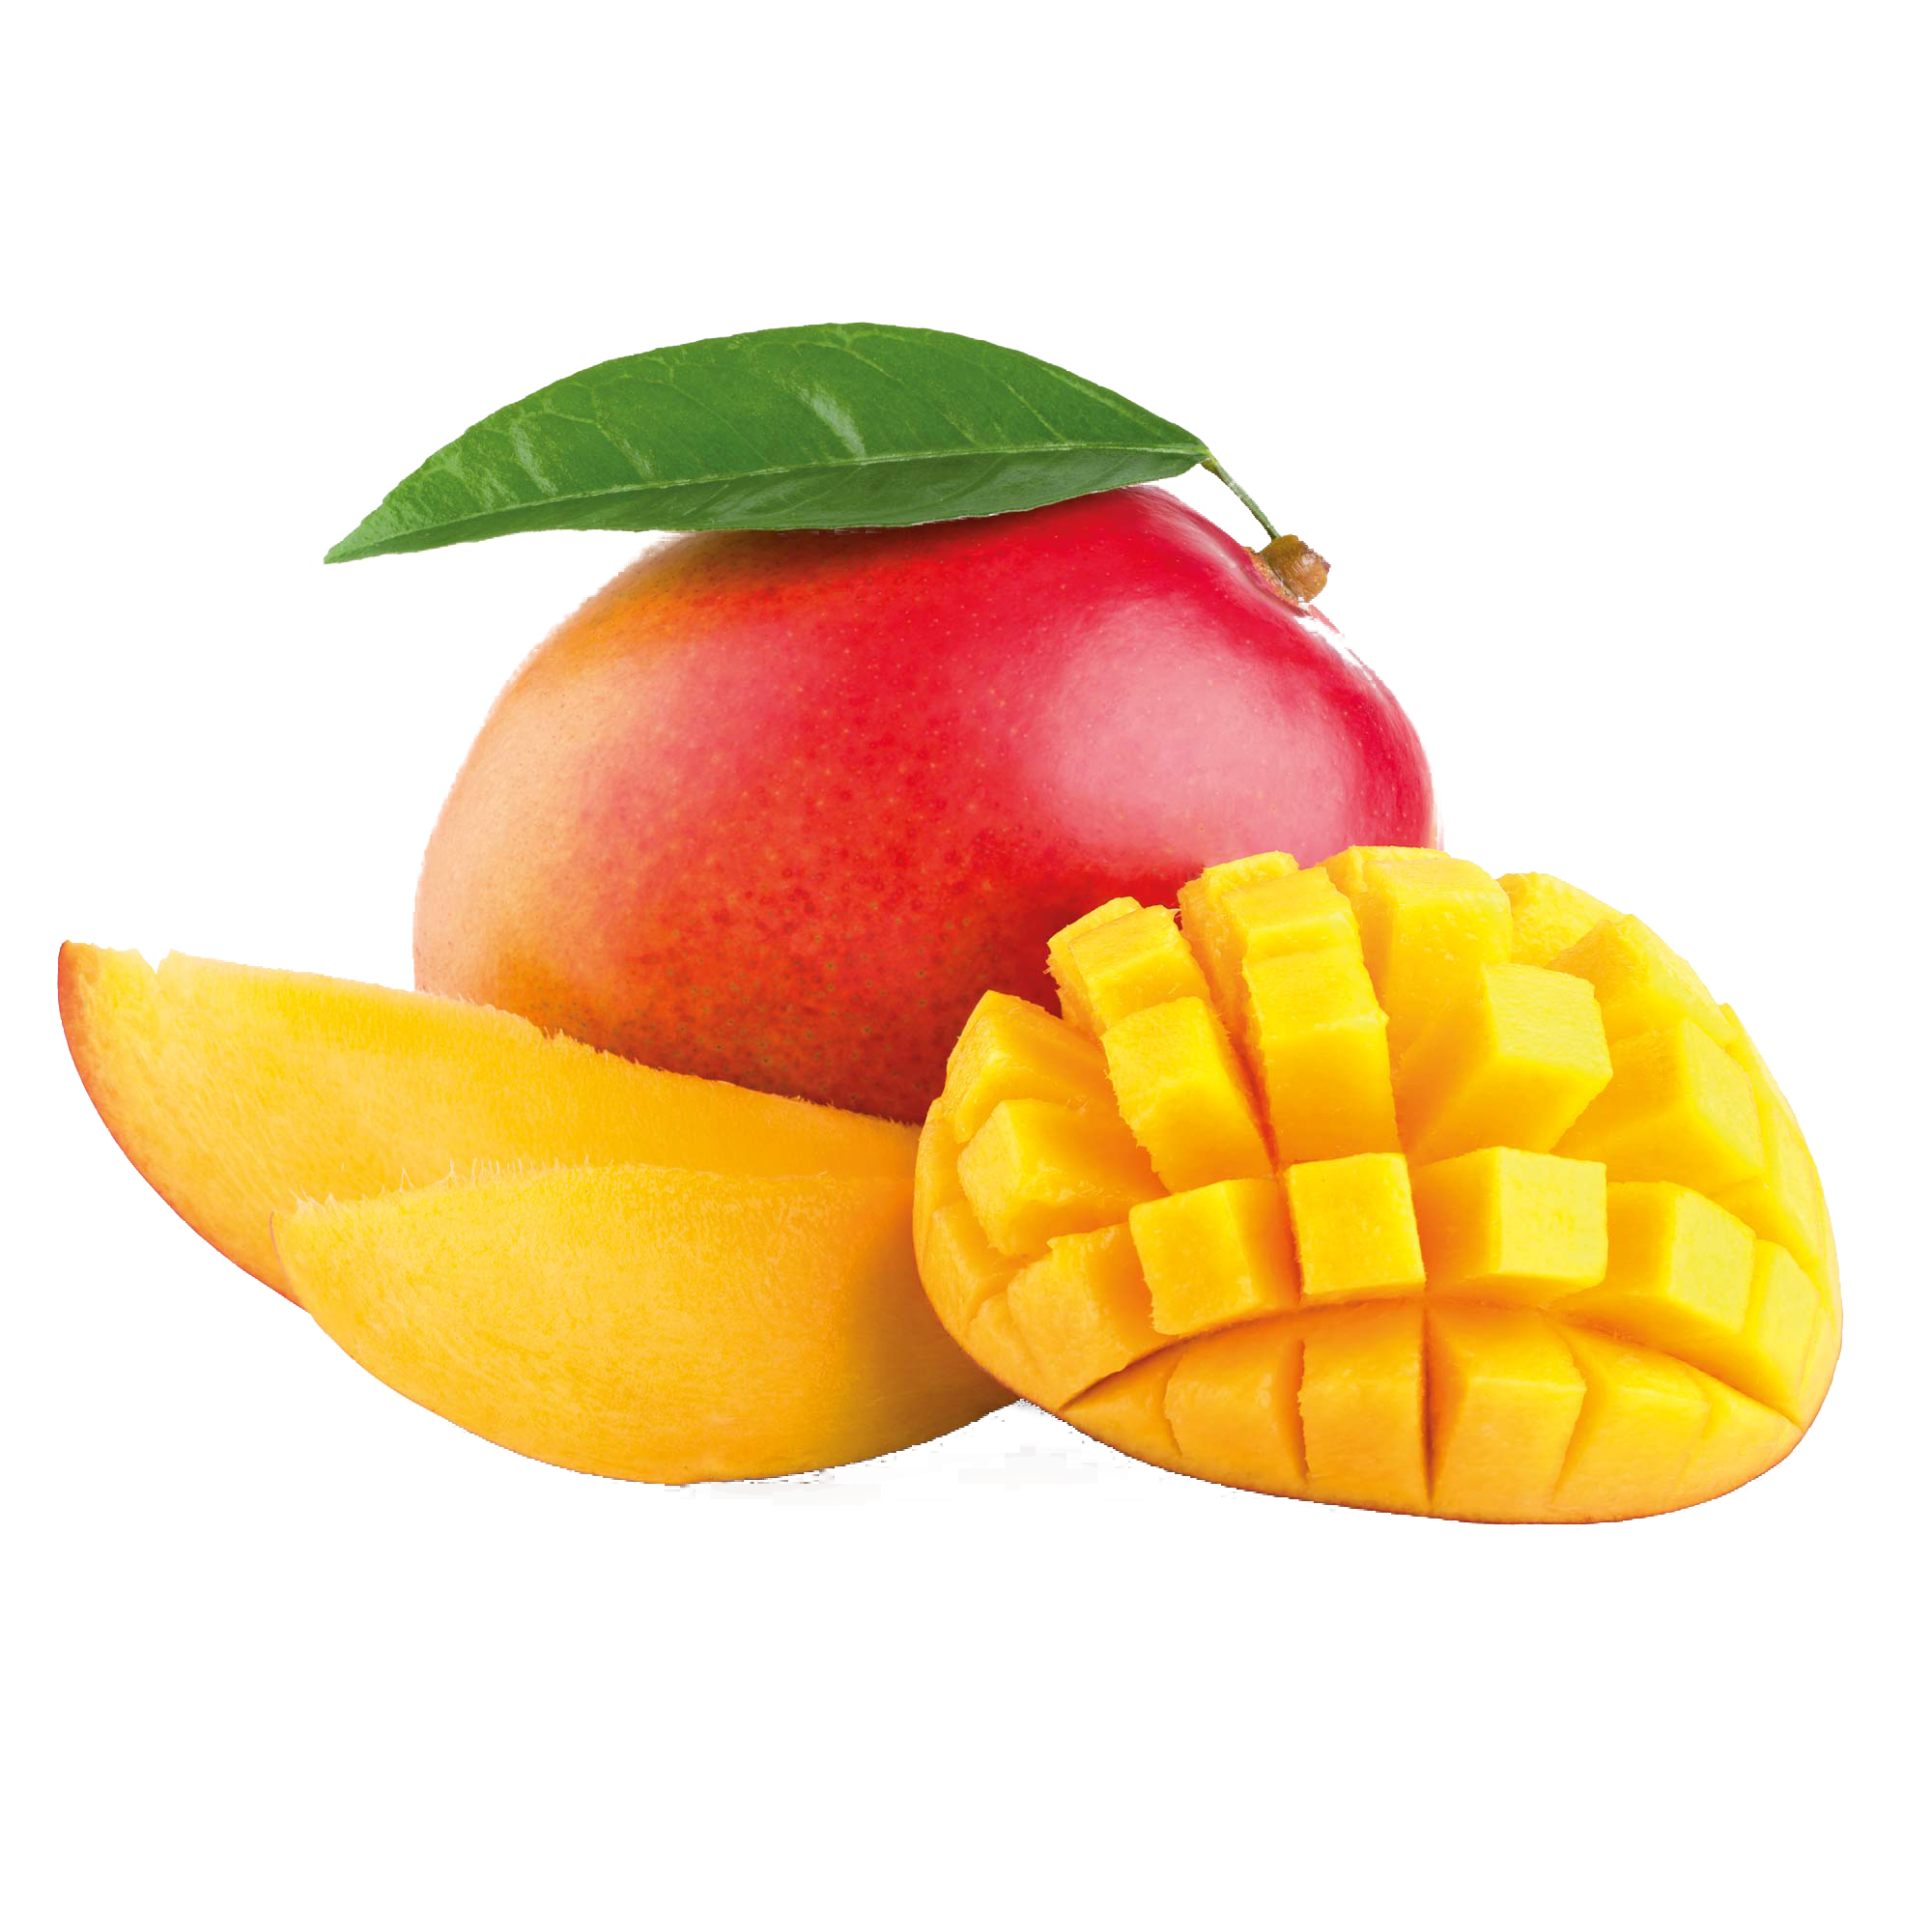 Mango clipart transparent background. Collection of free halve